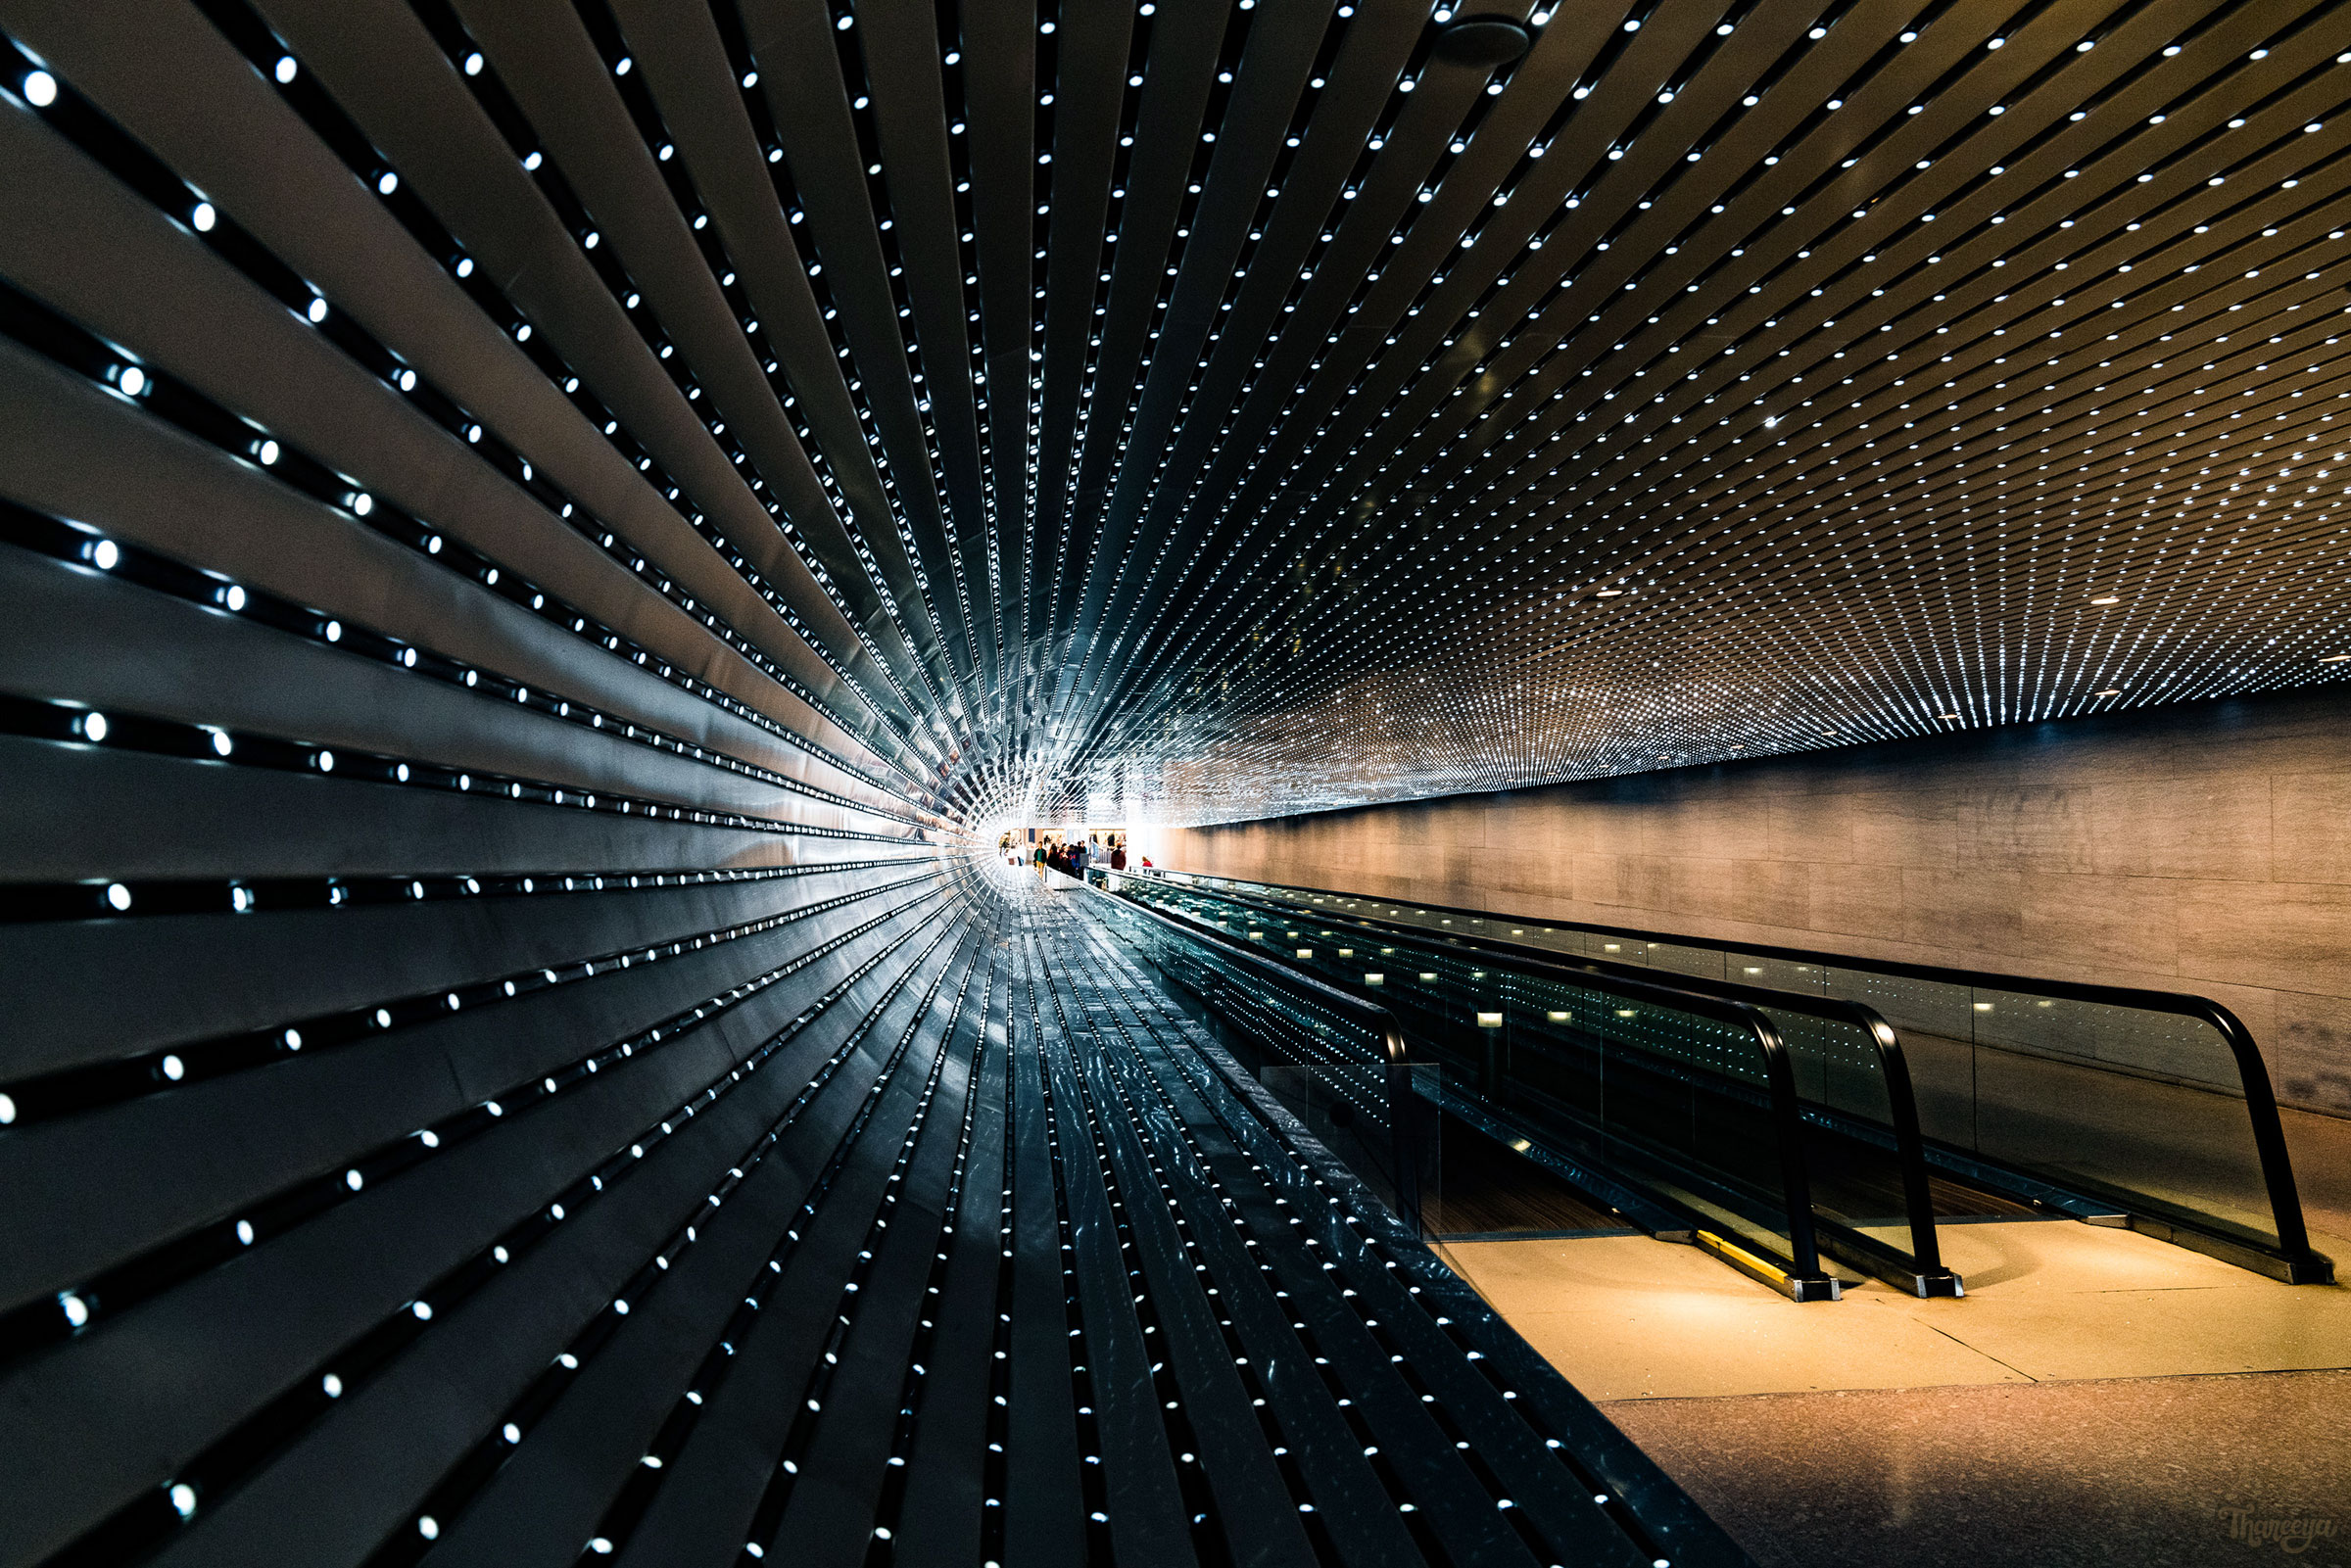 """Multiverse"" Light Sculpture by Leo Villareal in the tunnel connecting the East and West Buildings of the National Gallery of Art in Washington DC"